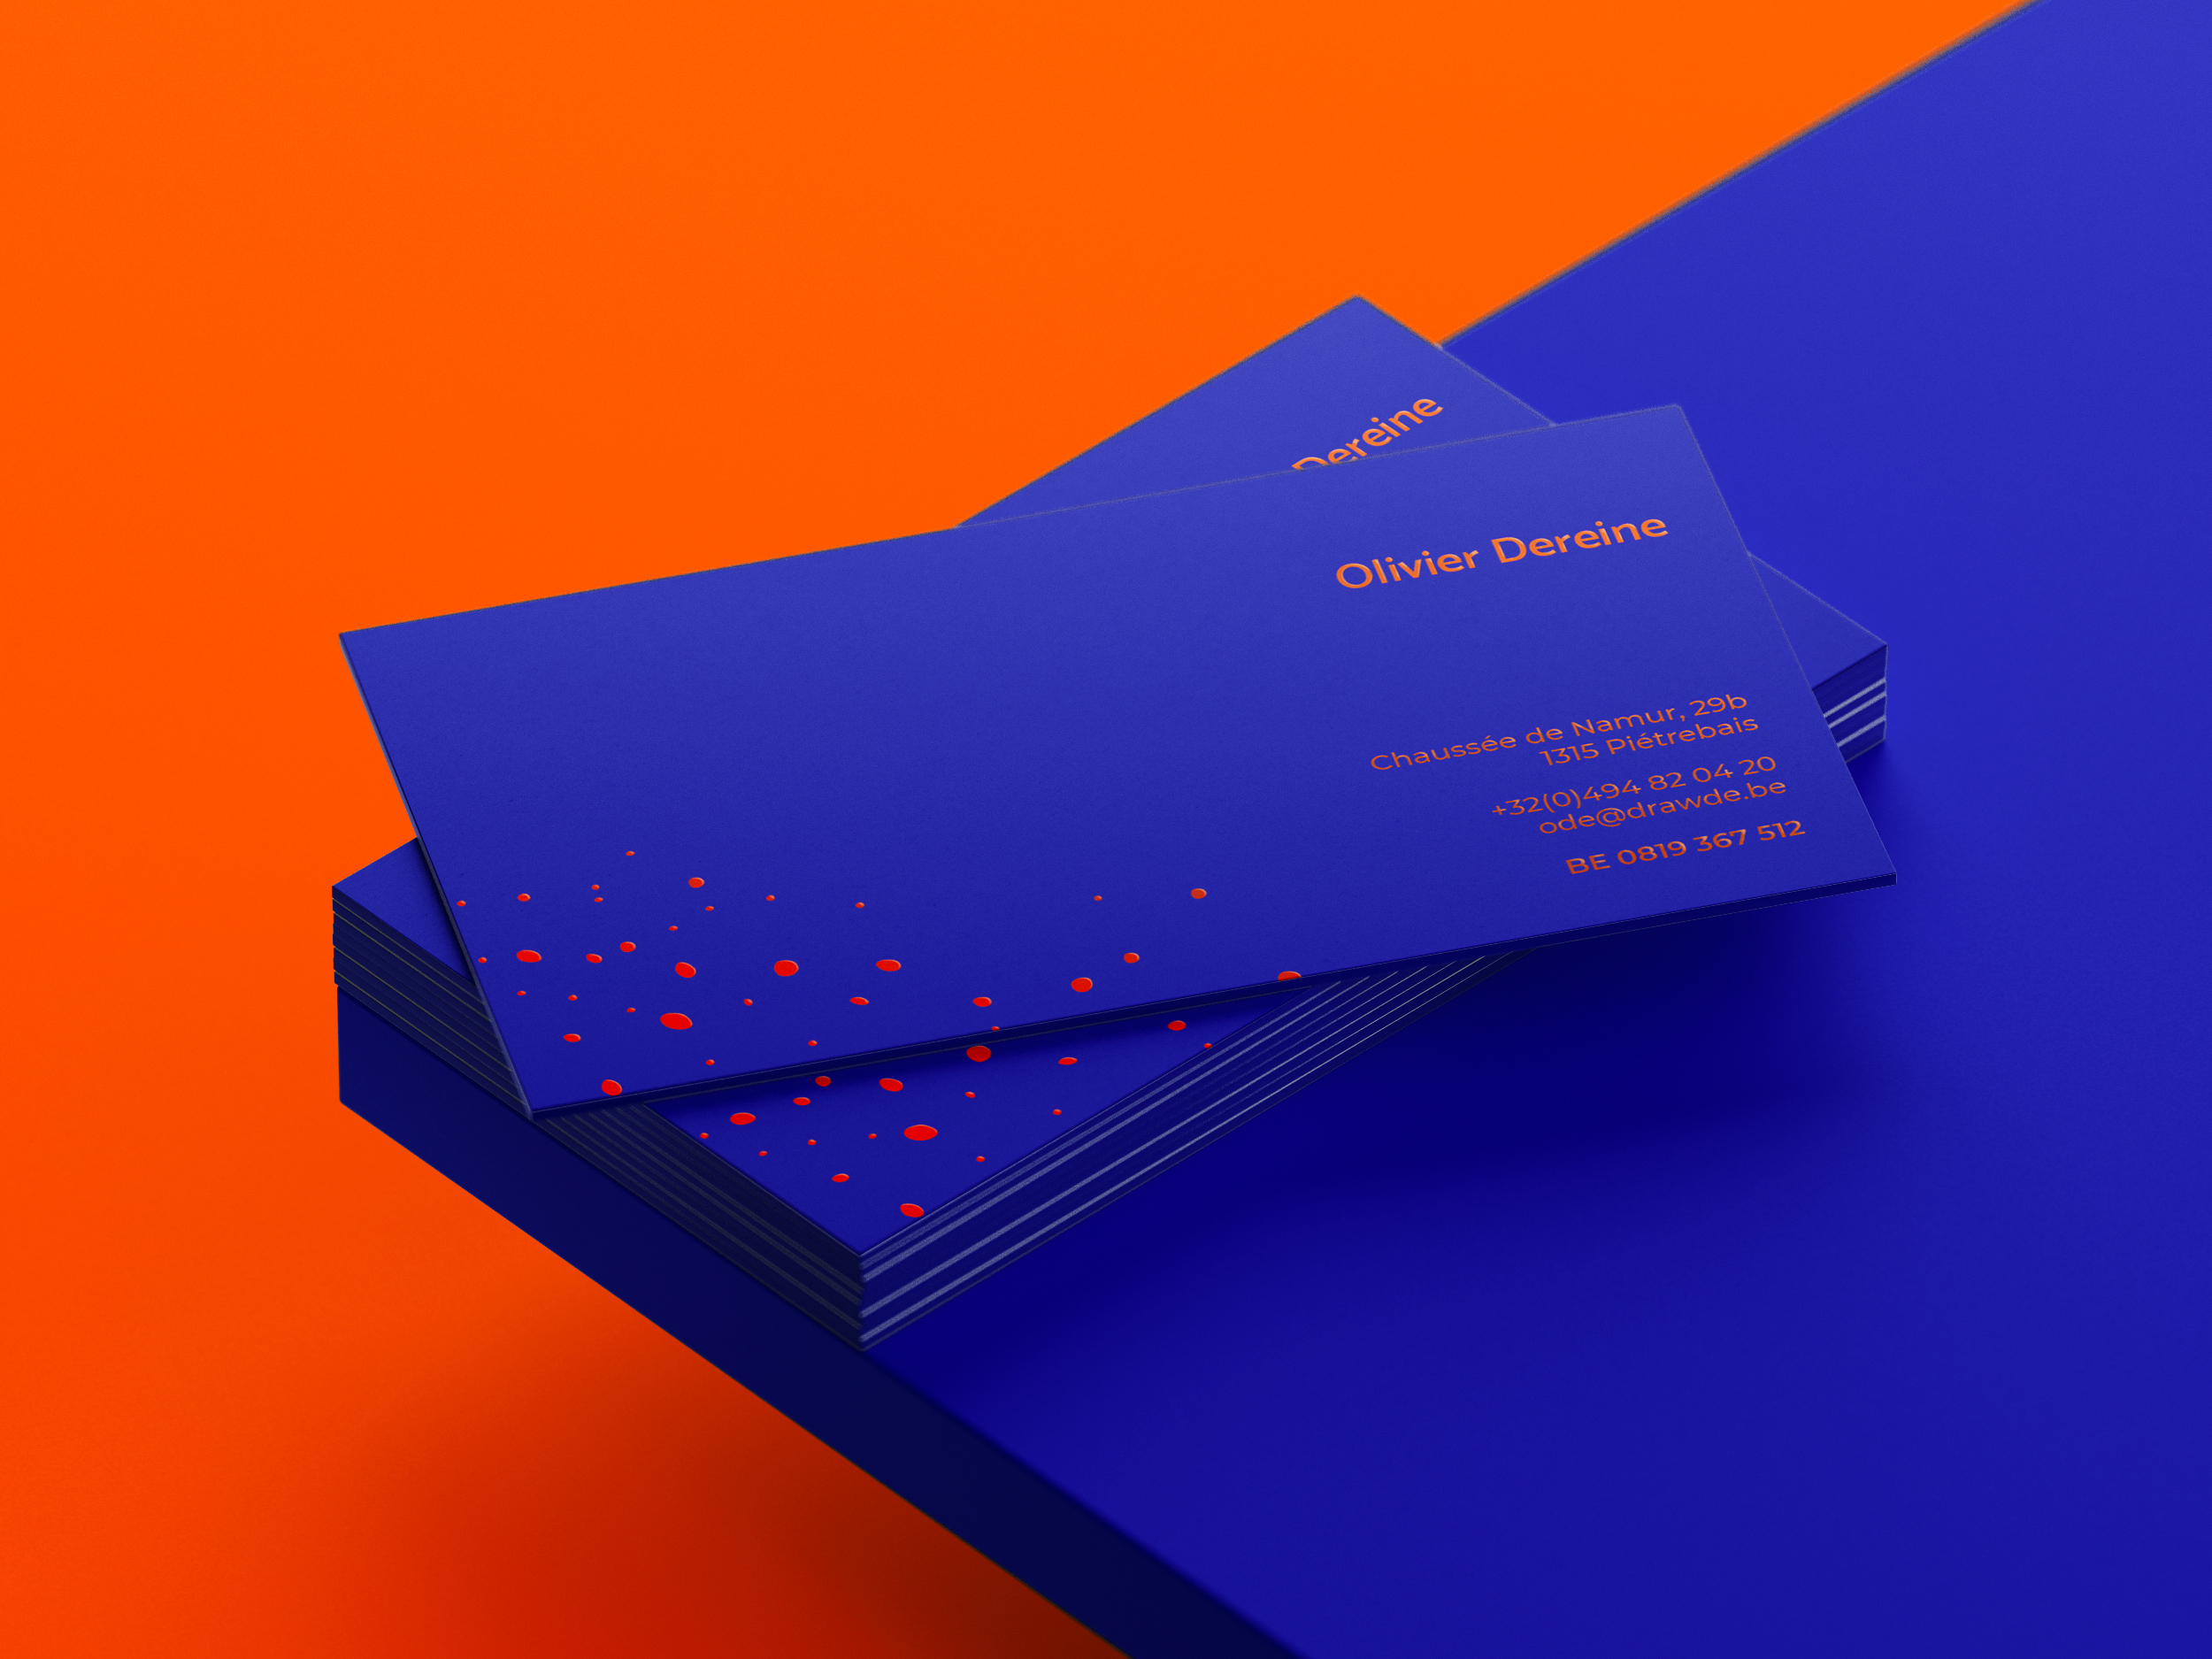 Blue Drawde business cards, back view.